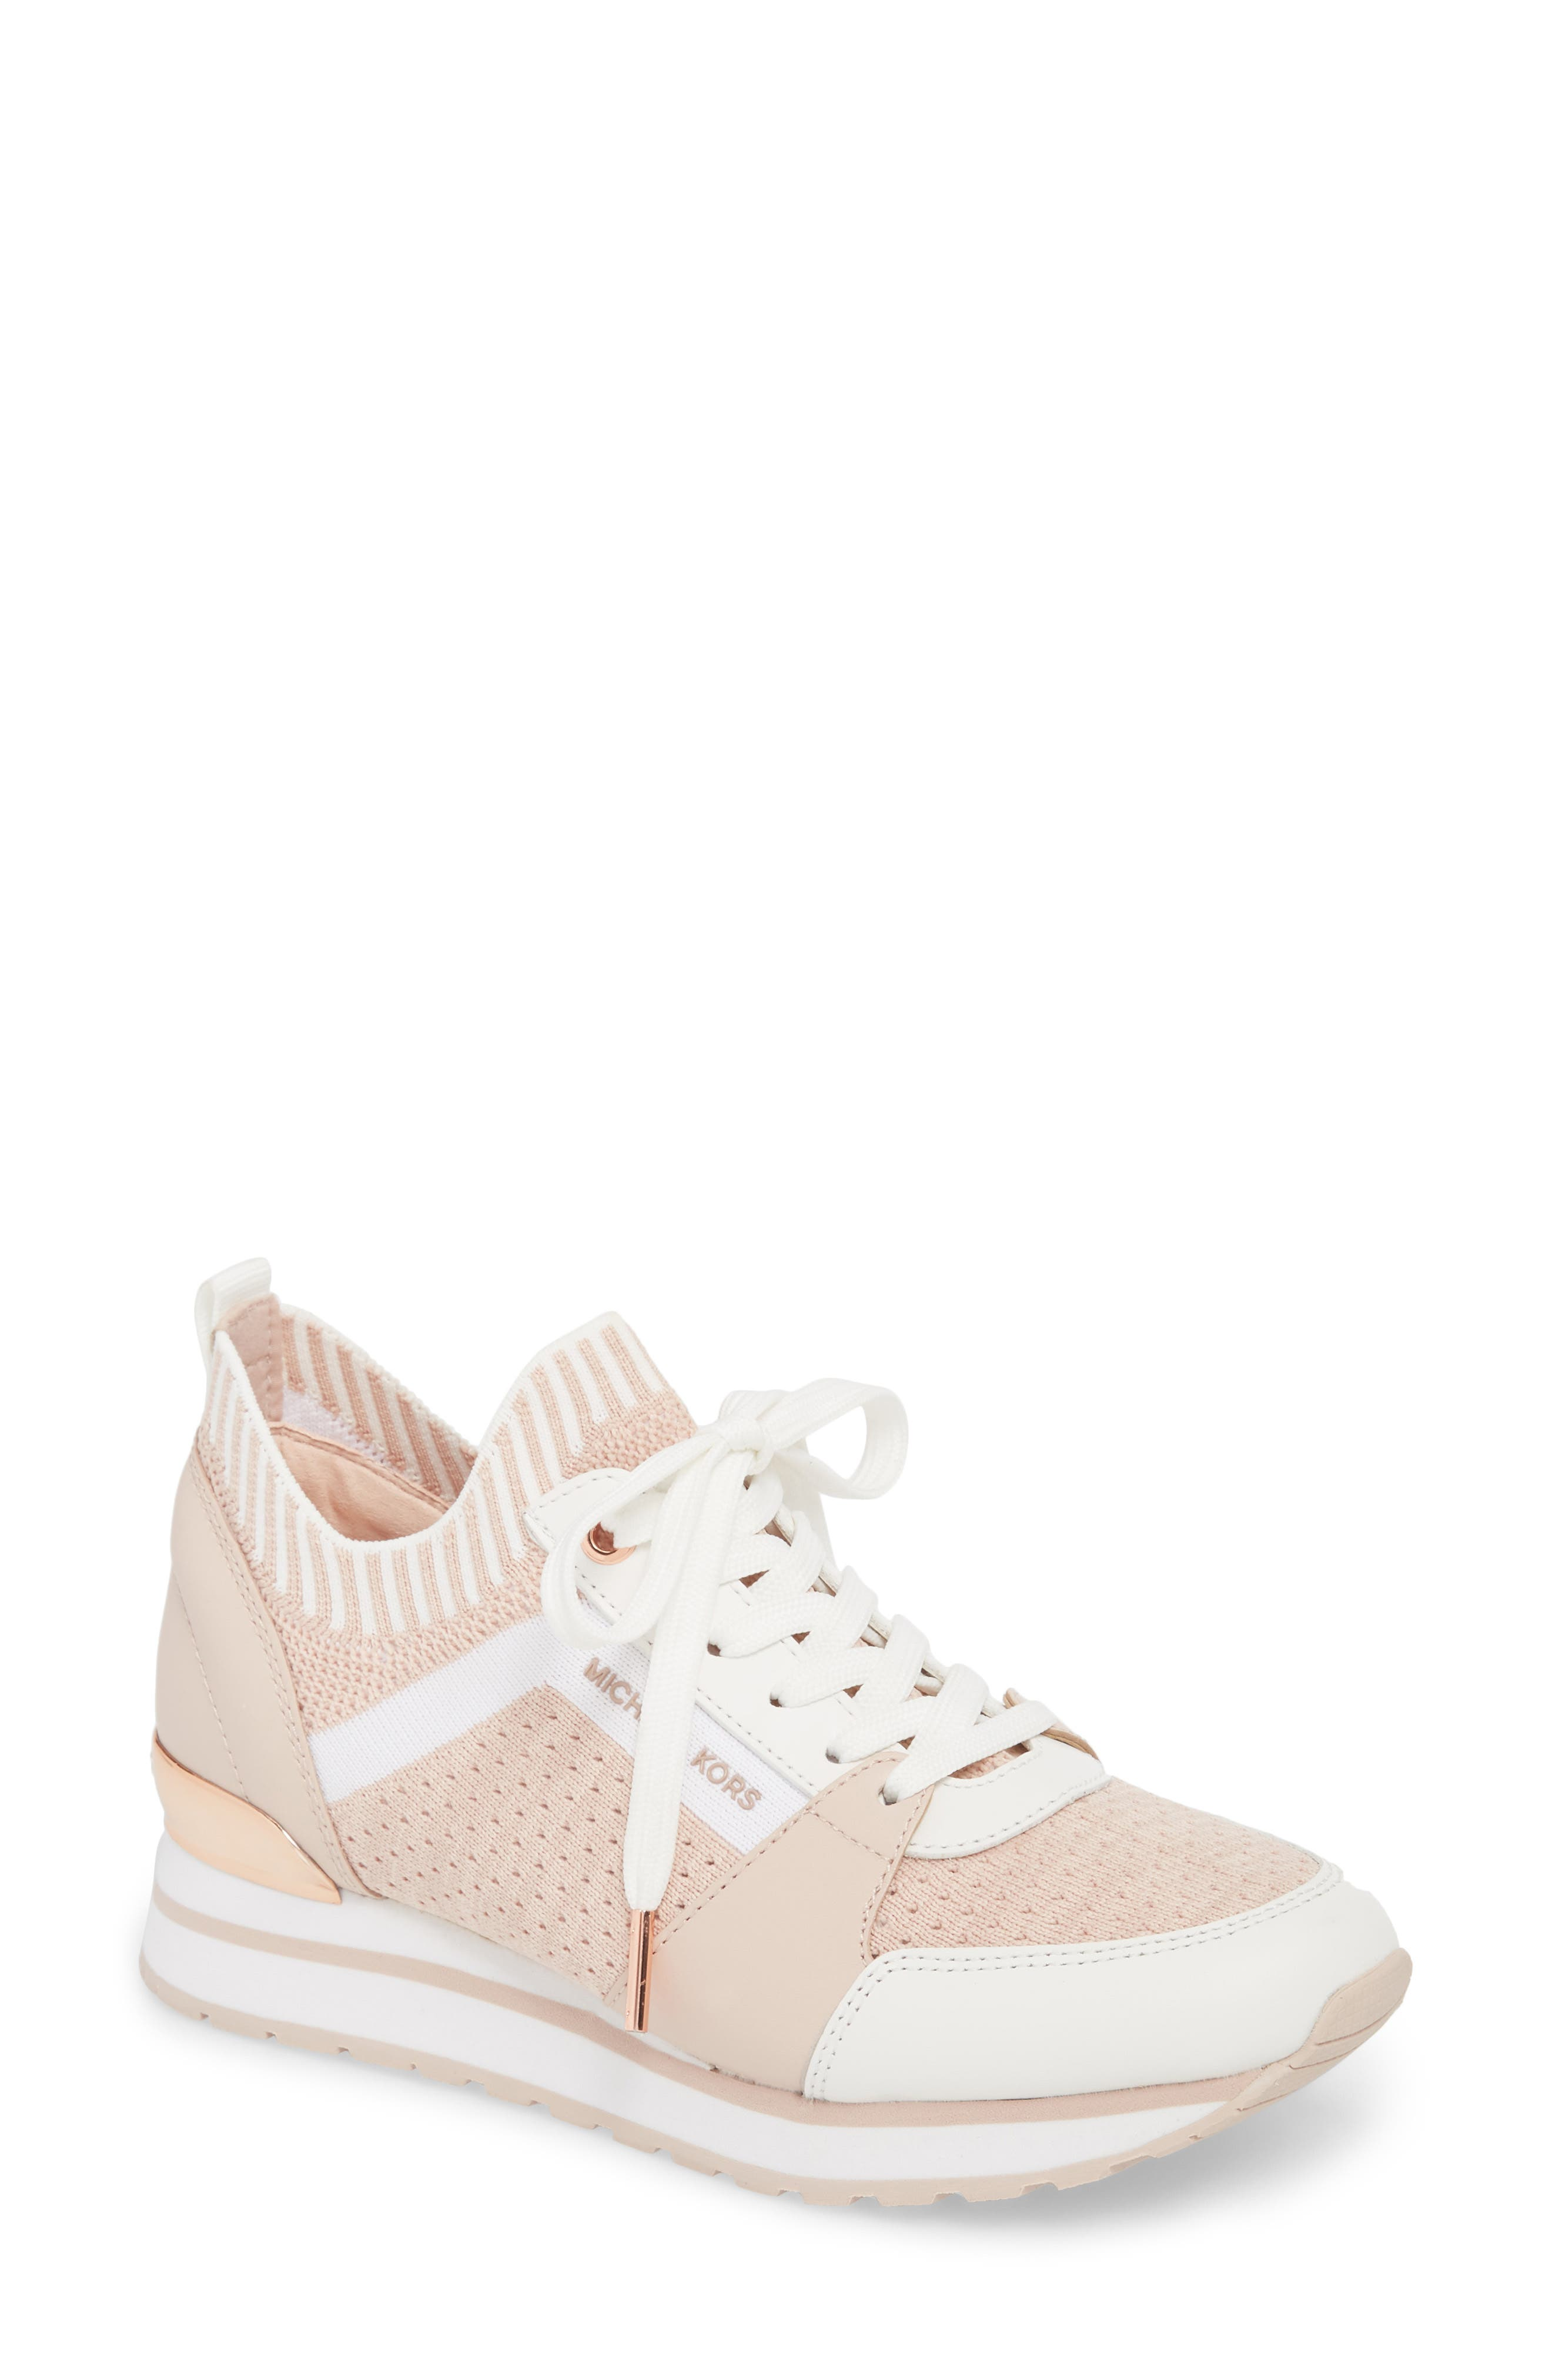 Billie Perforated Sneaker,                         Main,                         color, Soft Pink Fabric